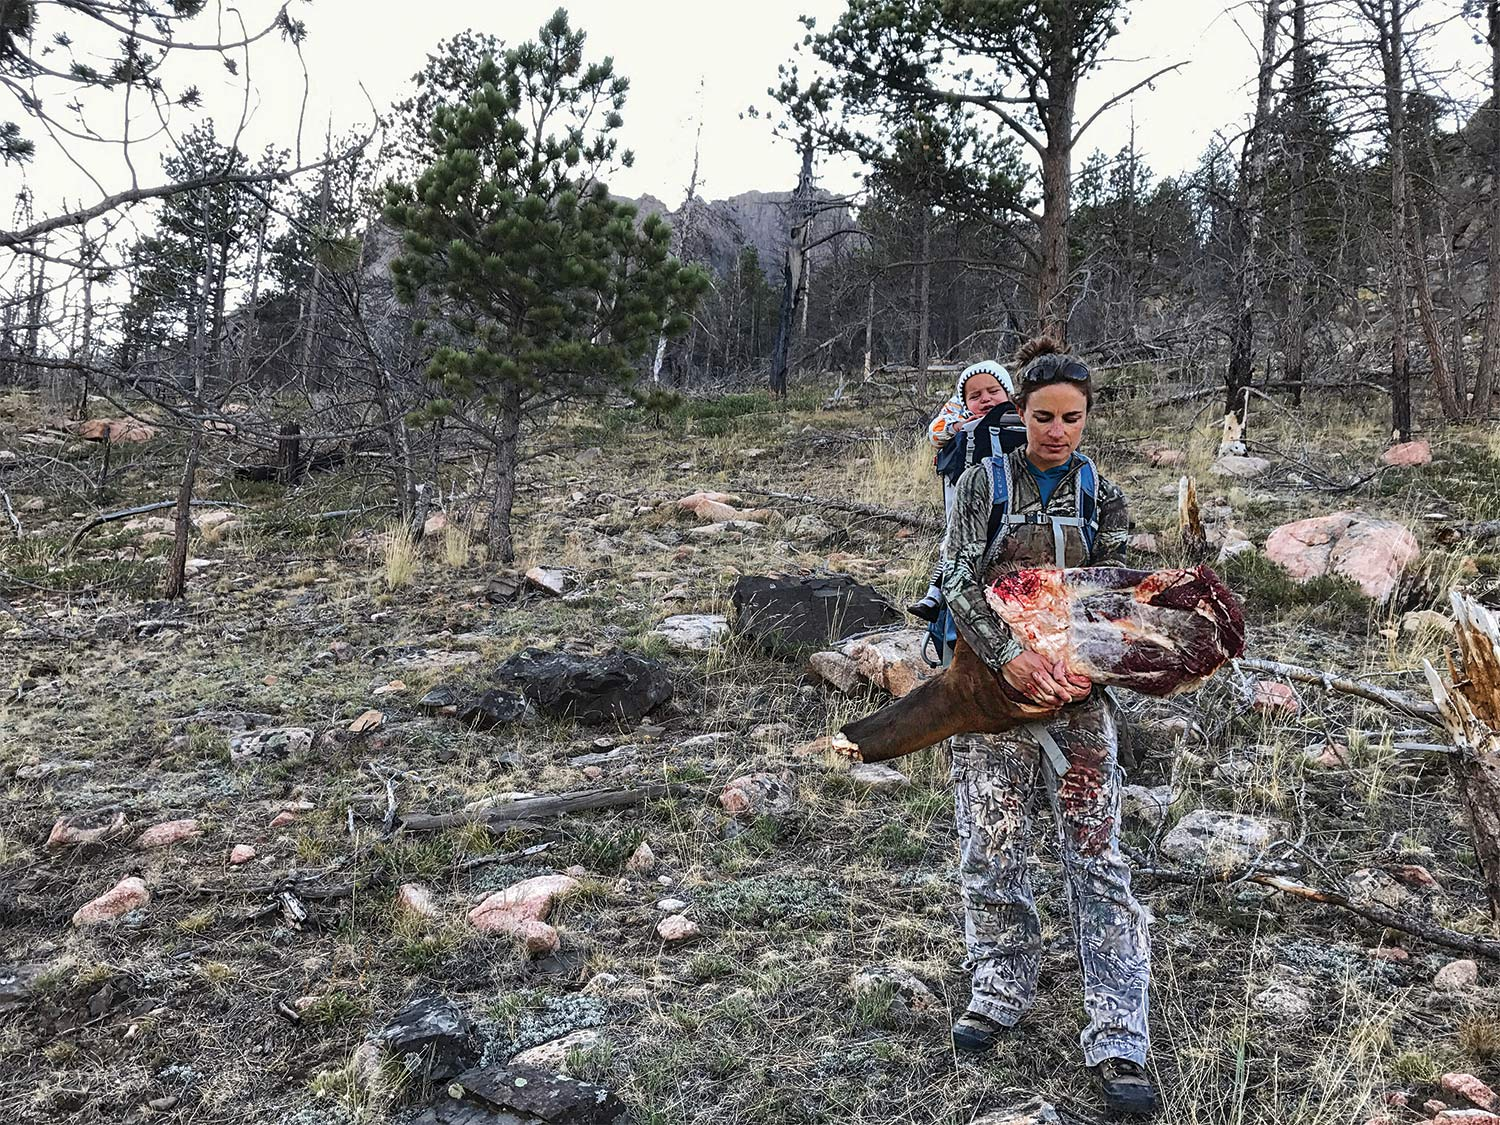 The author helps pack out her husband's elk while carrying her daughter on her back.